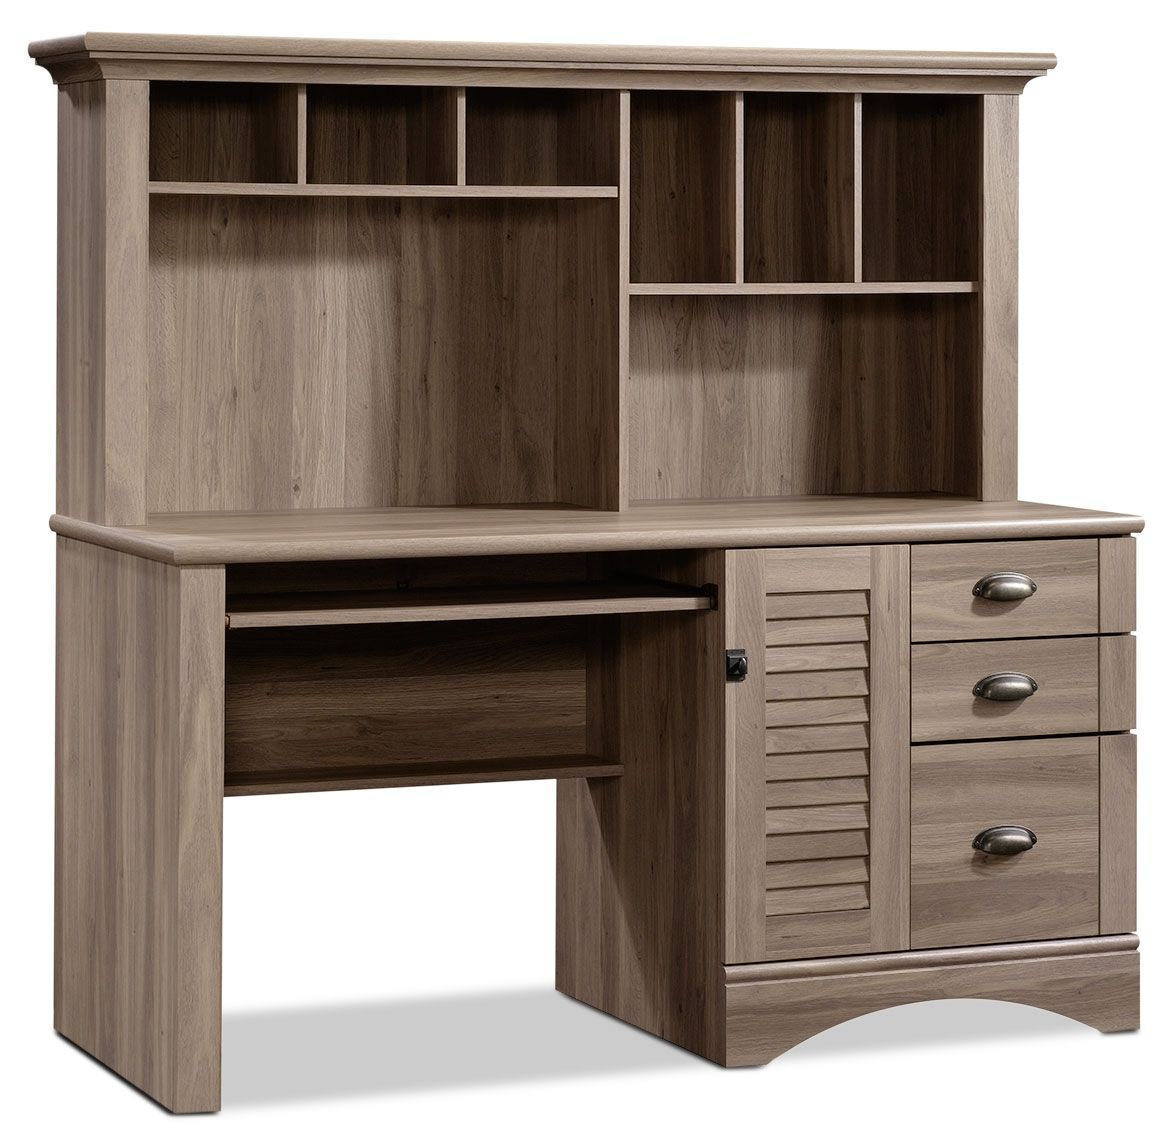 Pin On Dressing Table Design